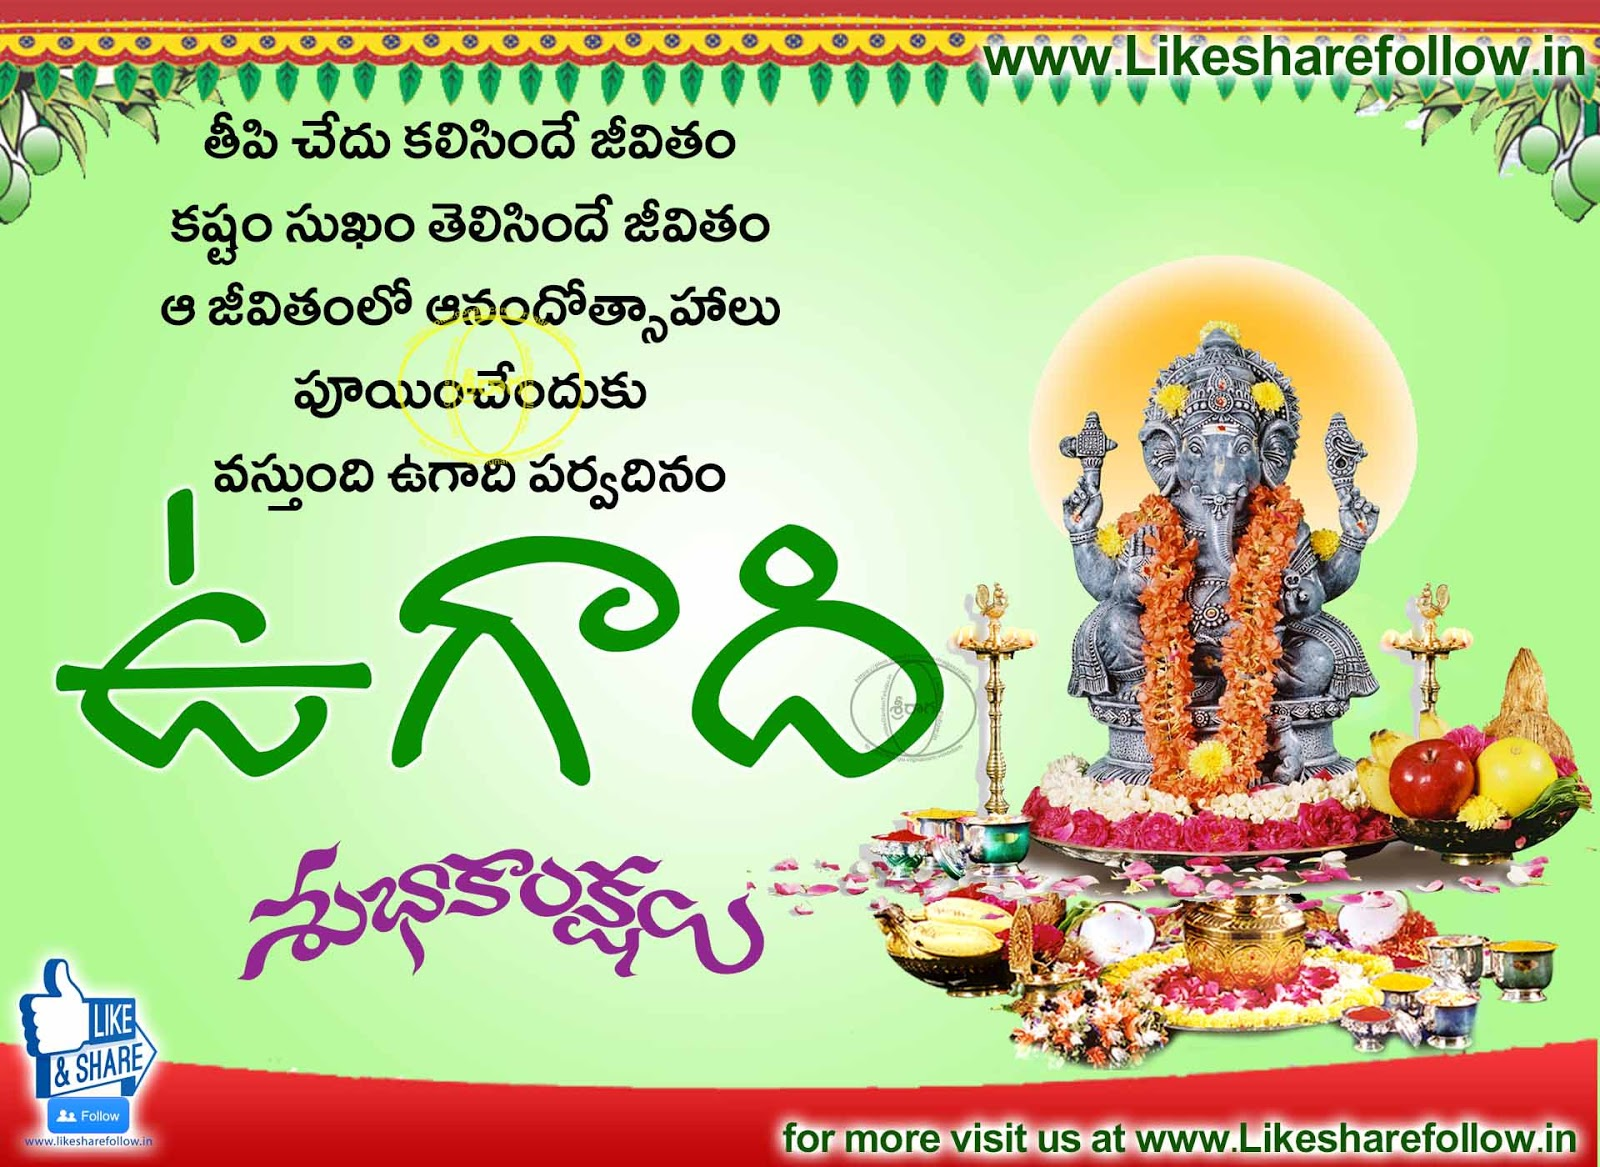 Ugadi new year greetings wishes messages quotes sms like share follow telugu new year ugadi greetings wishes quotes kristyandbryce Images